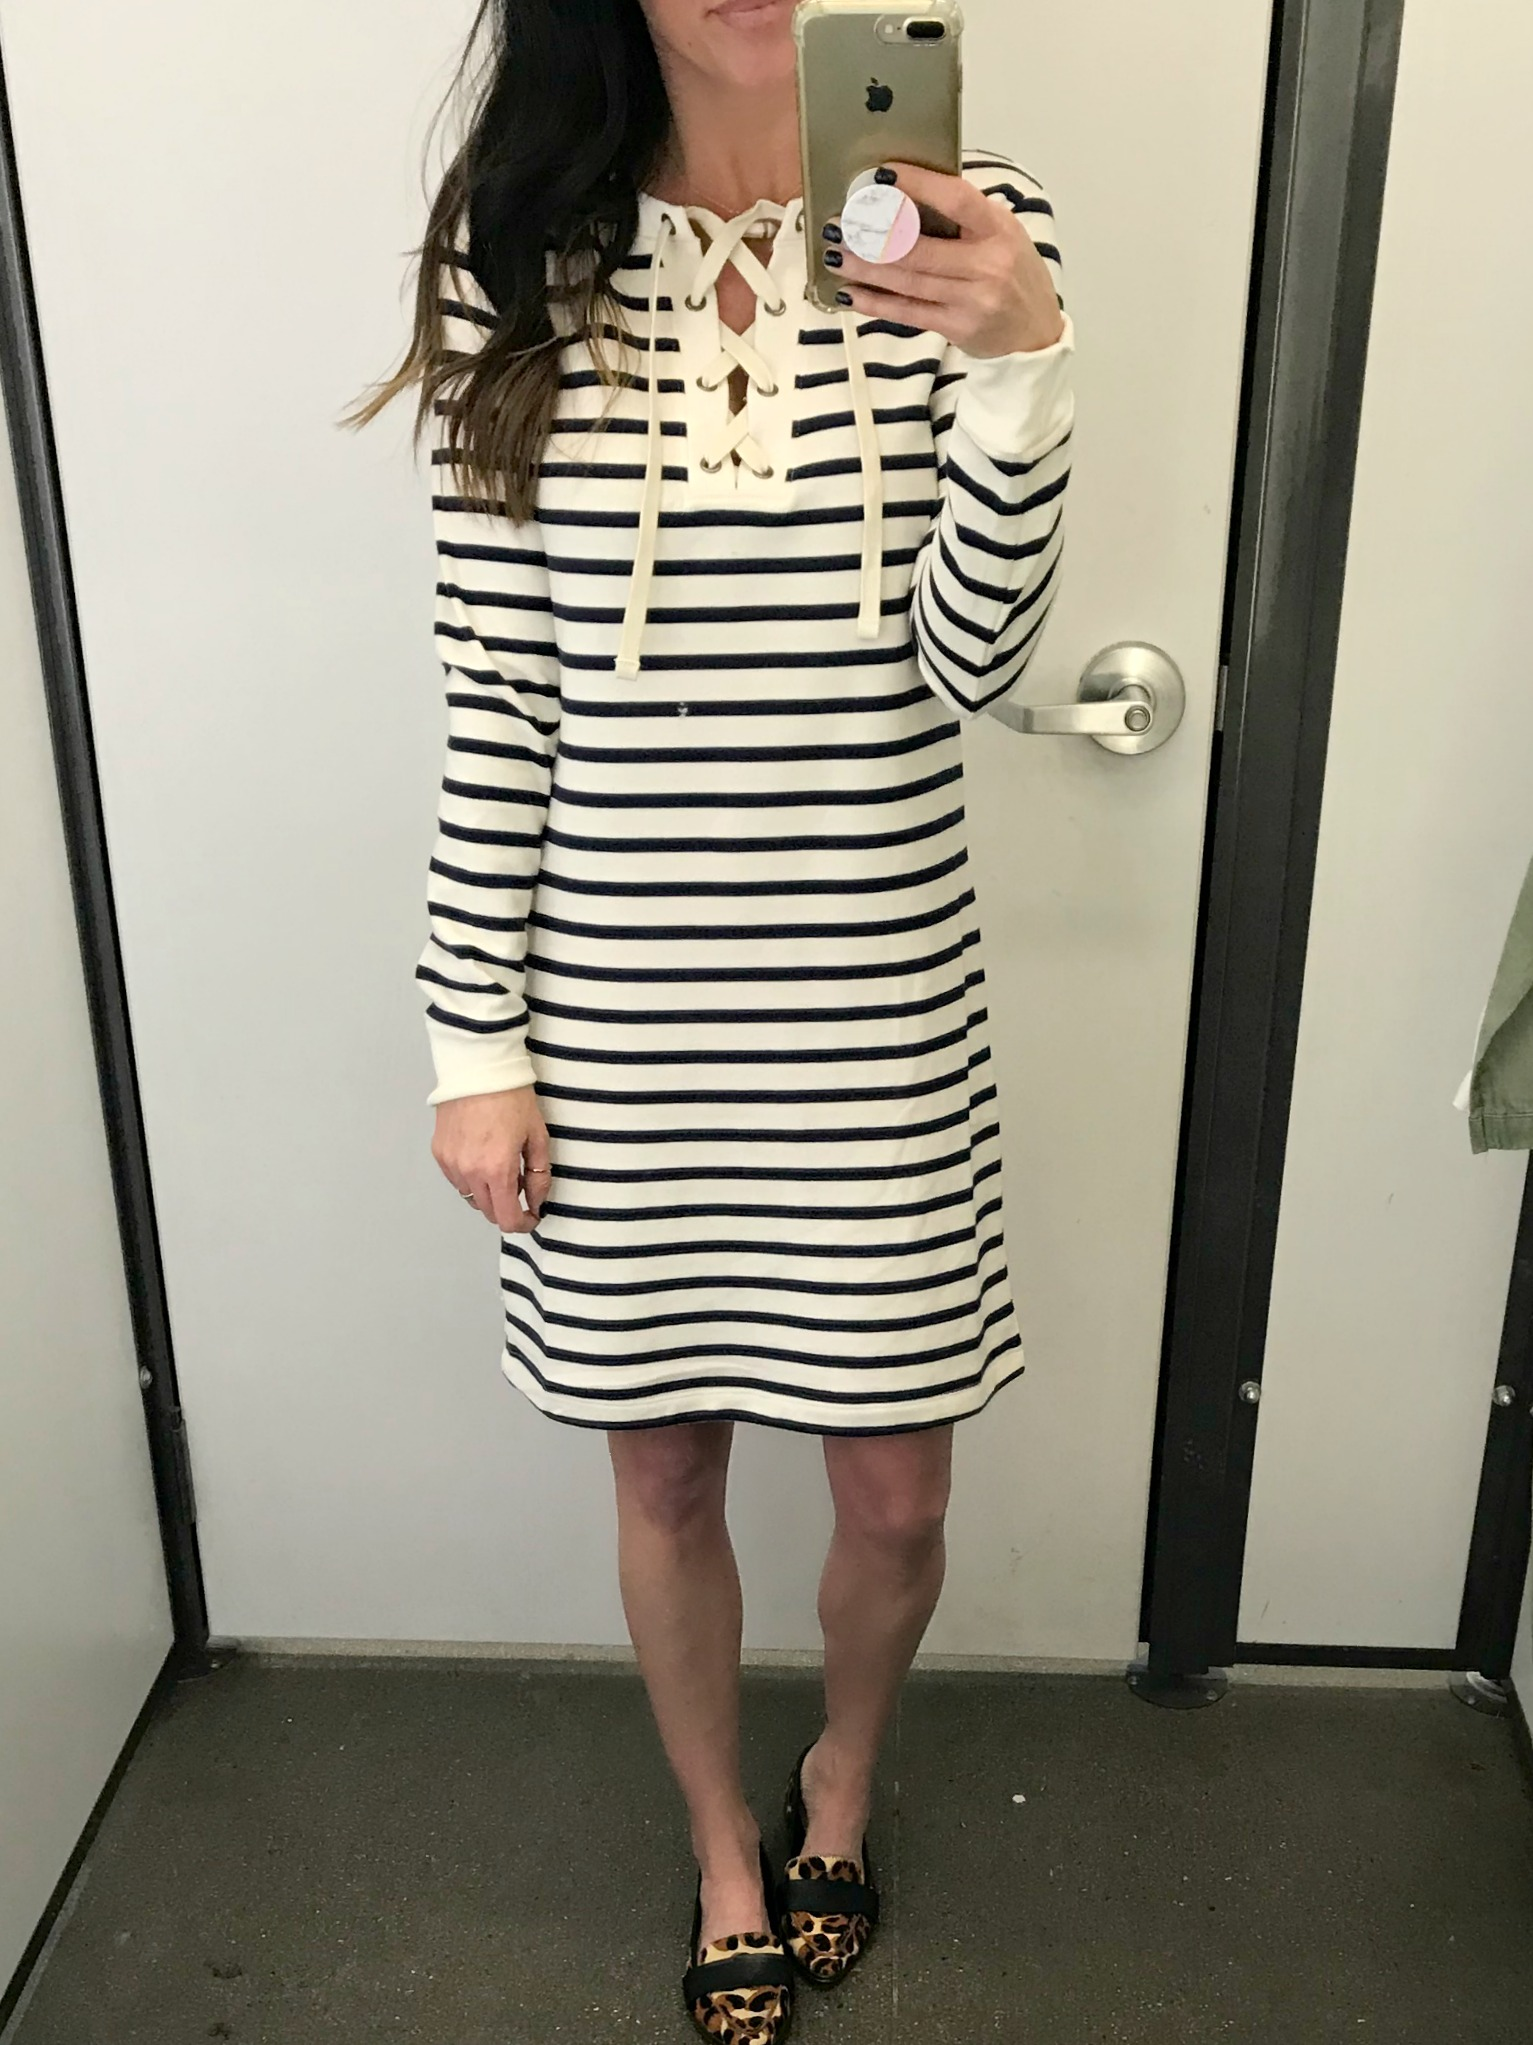 8feaae6db05f Lace-Up French-Terry Dress    This dress was SO SOFT and comfy! It  literally feels like cozy pajamas! I also think this could be great for  spring.